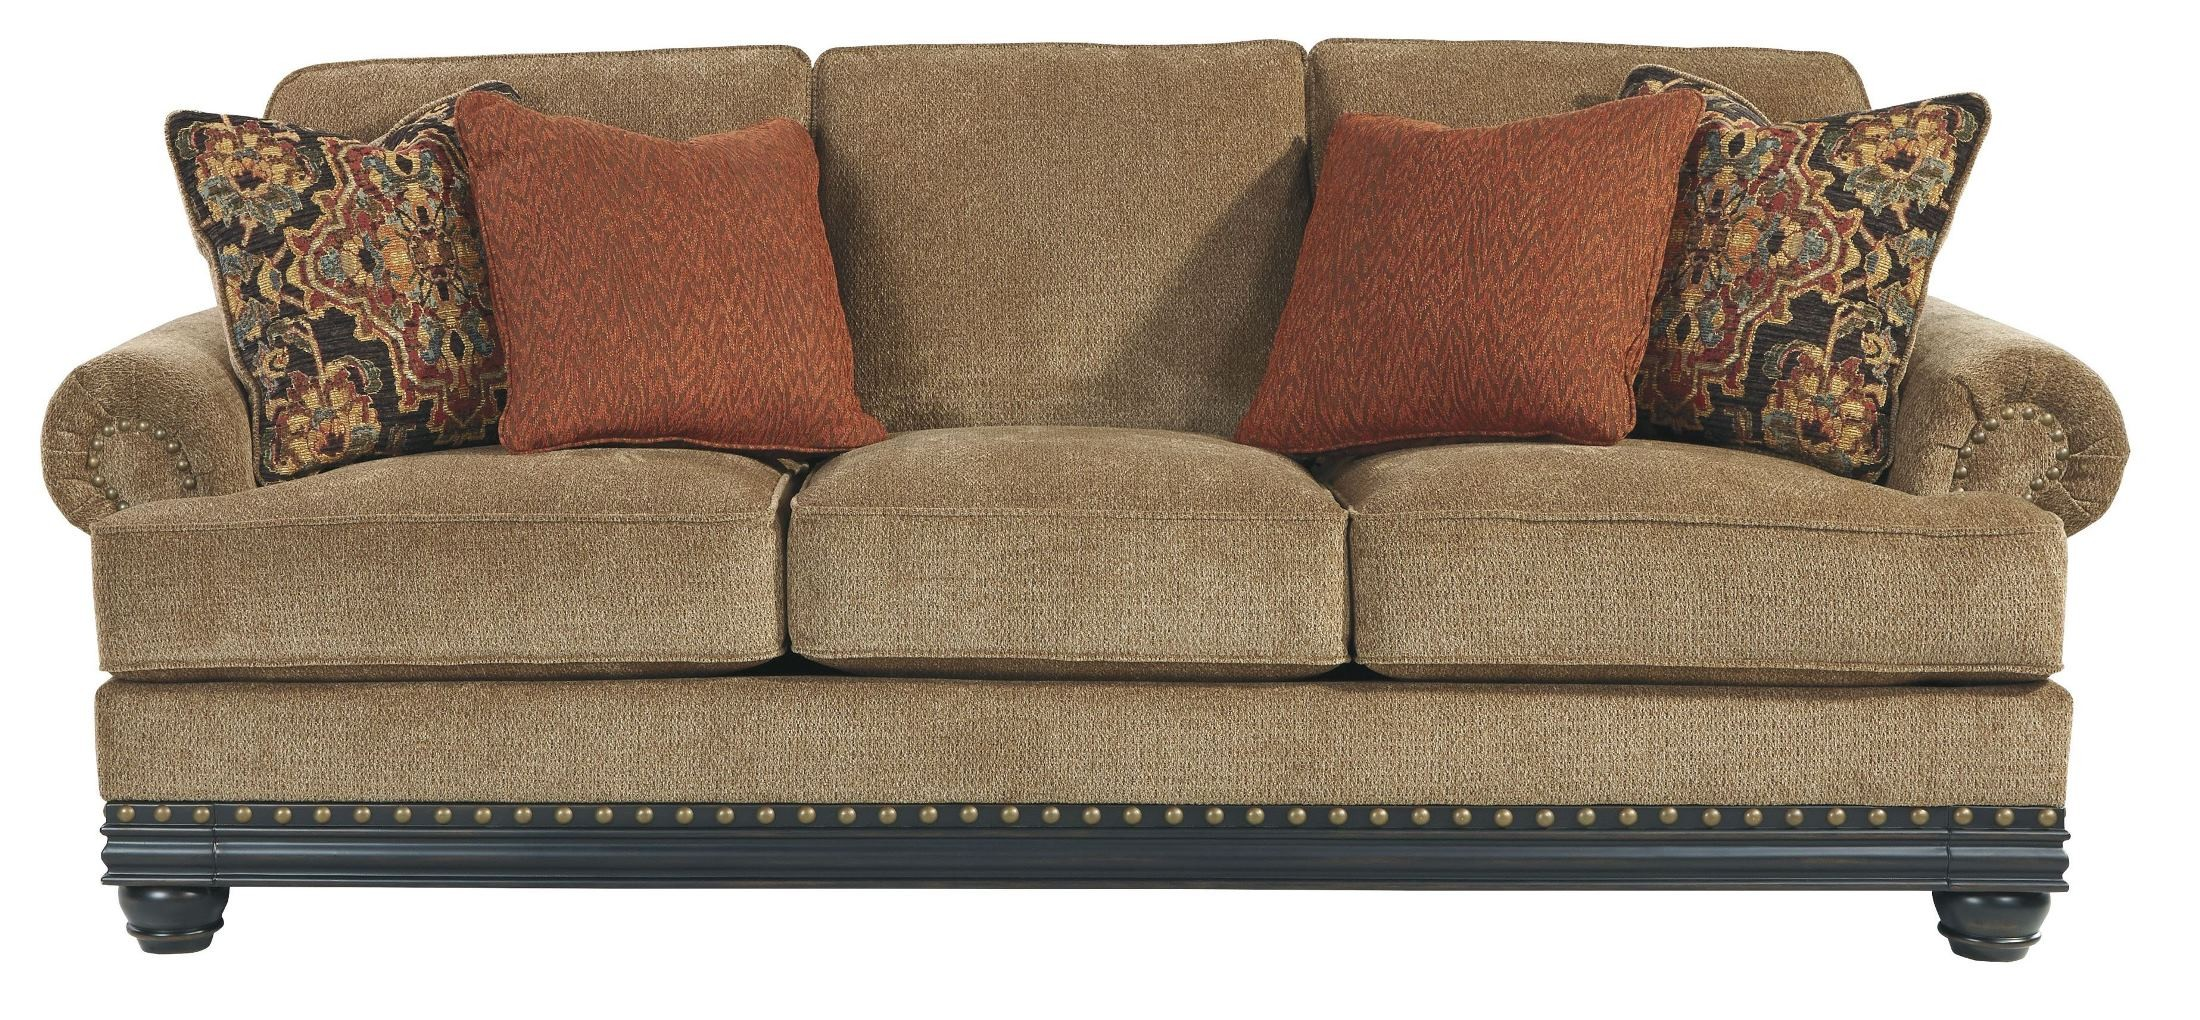 Elnora Umber Sofa From Ashley 9370238 Coleman Furniture